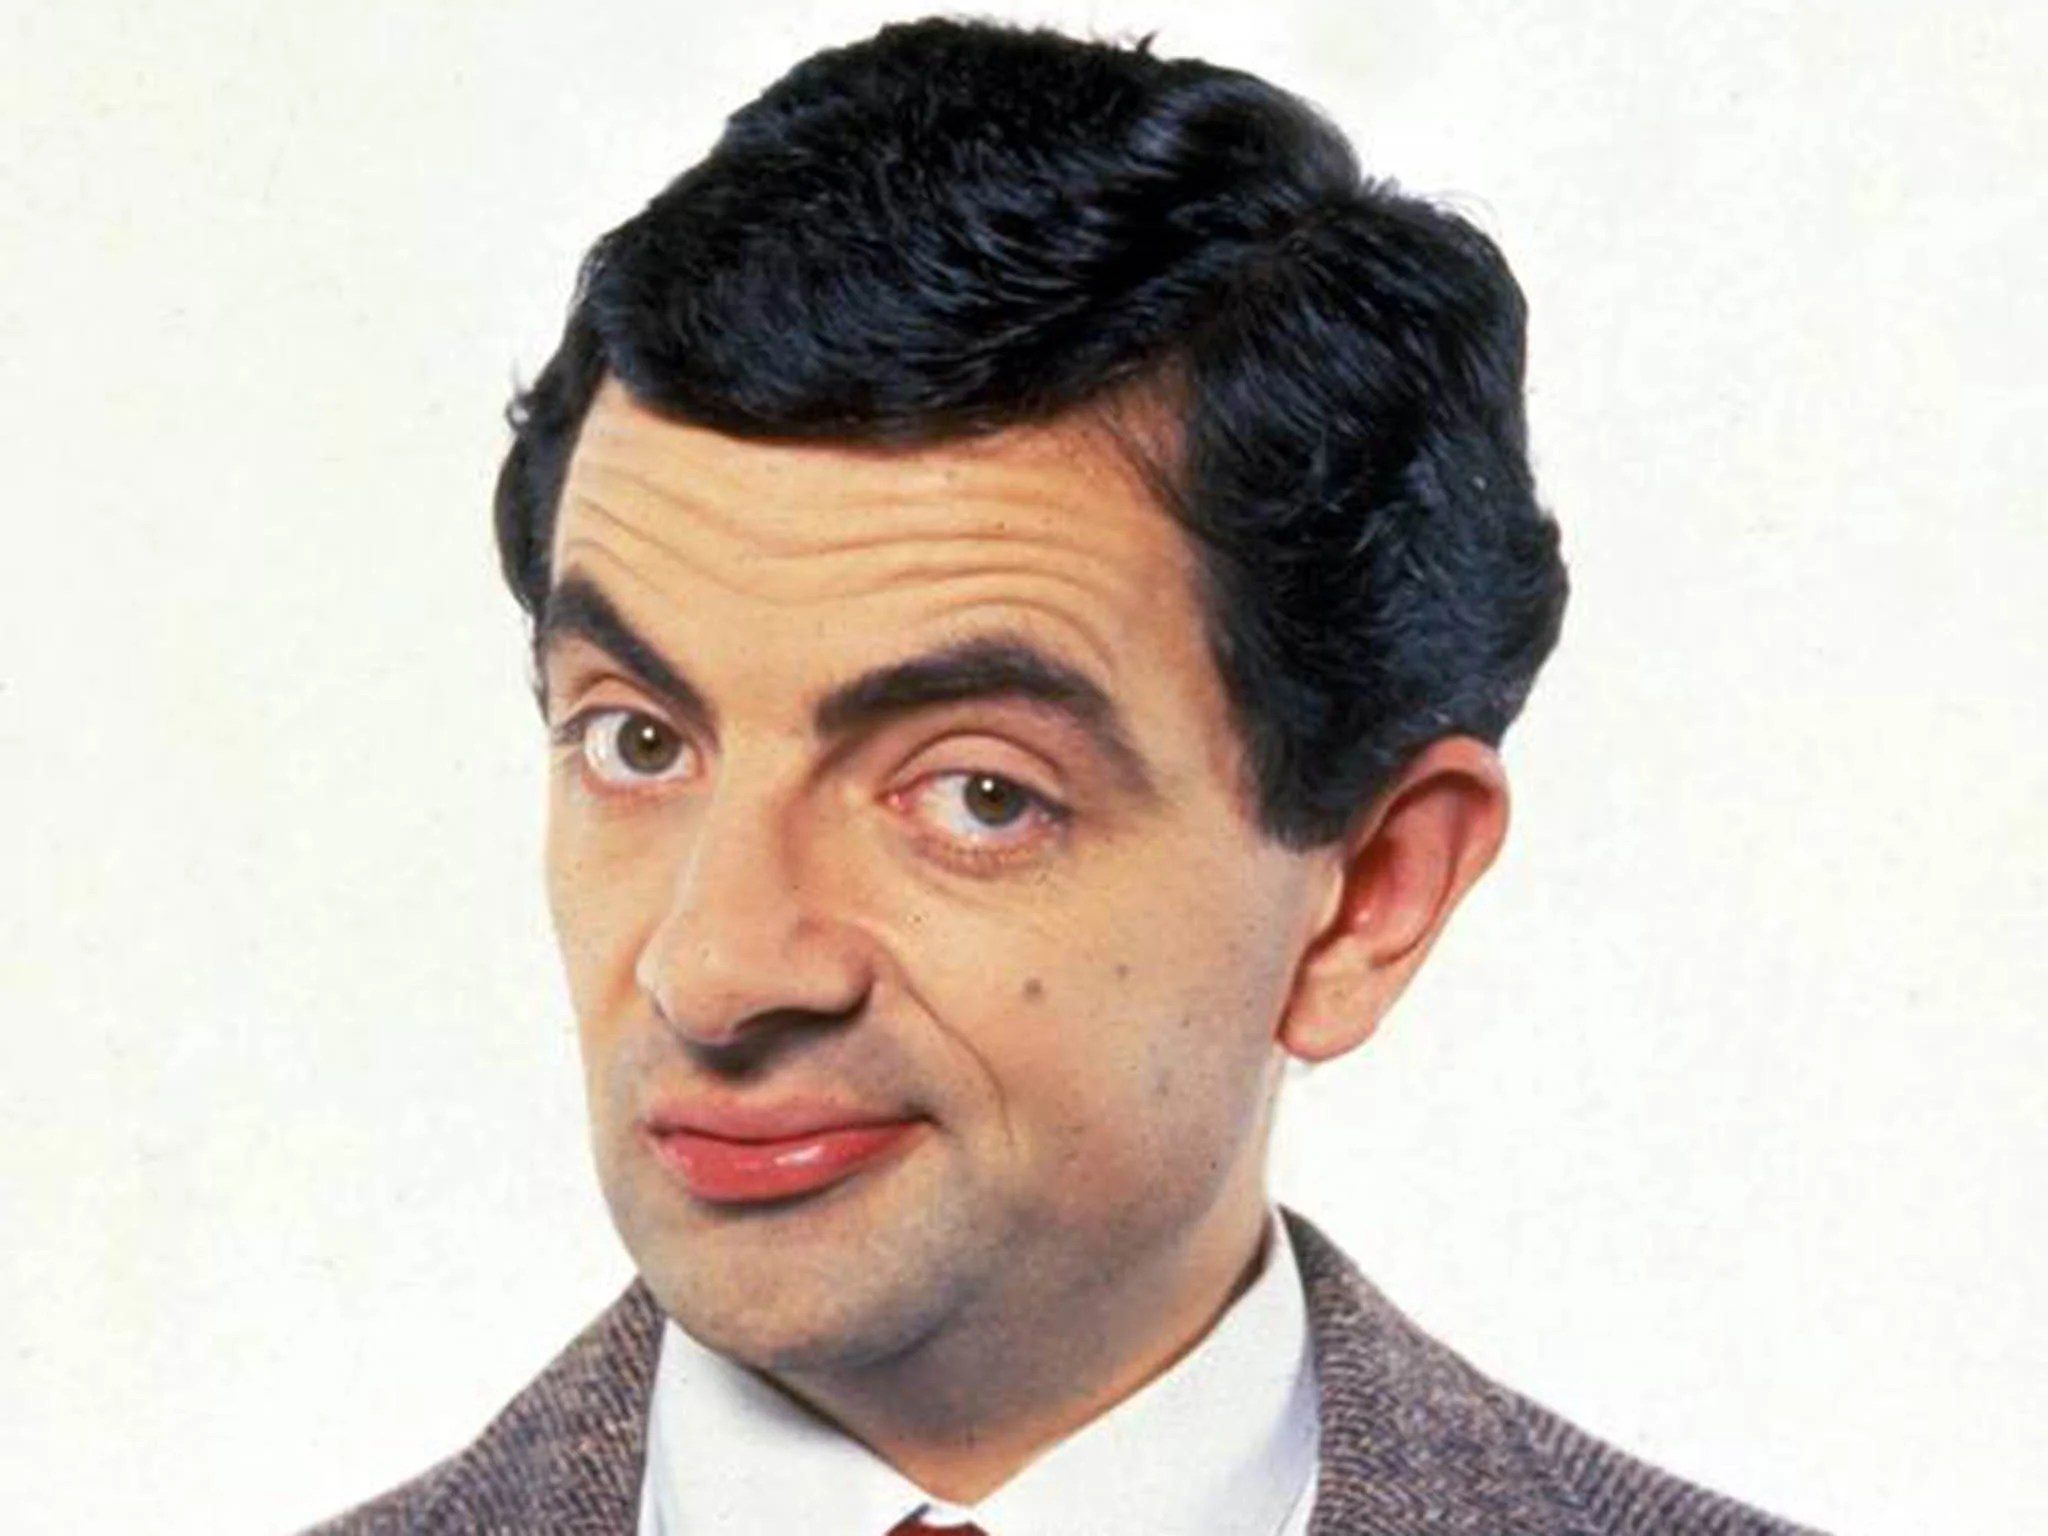 Mr Bean Comic Relief 2015 Rowan Atkinson To Revive Mr Bean For First Time